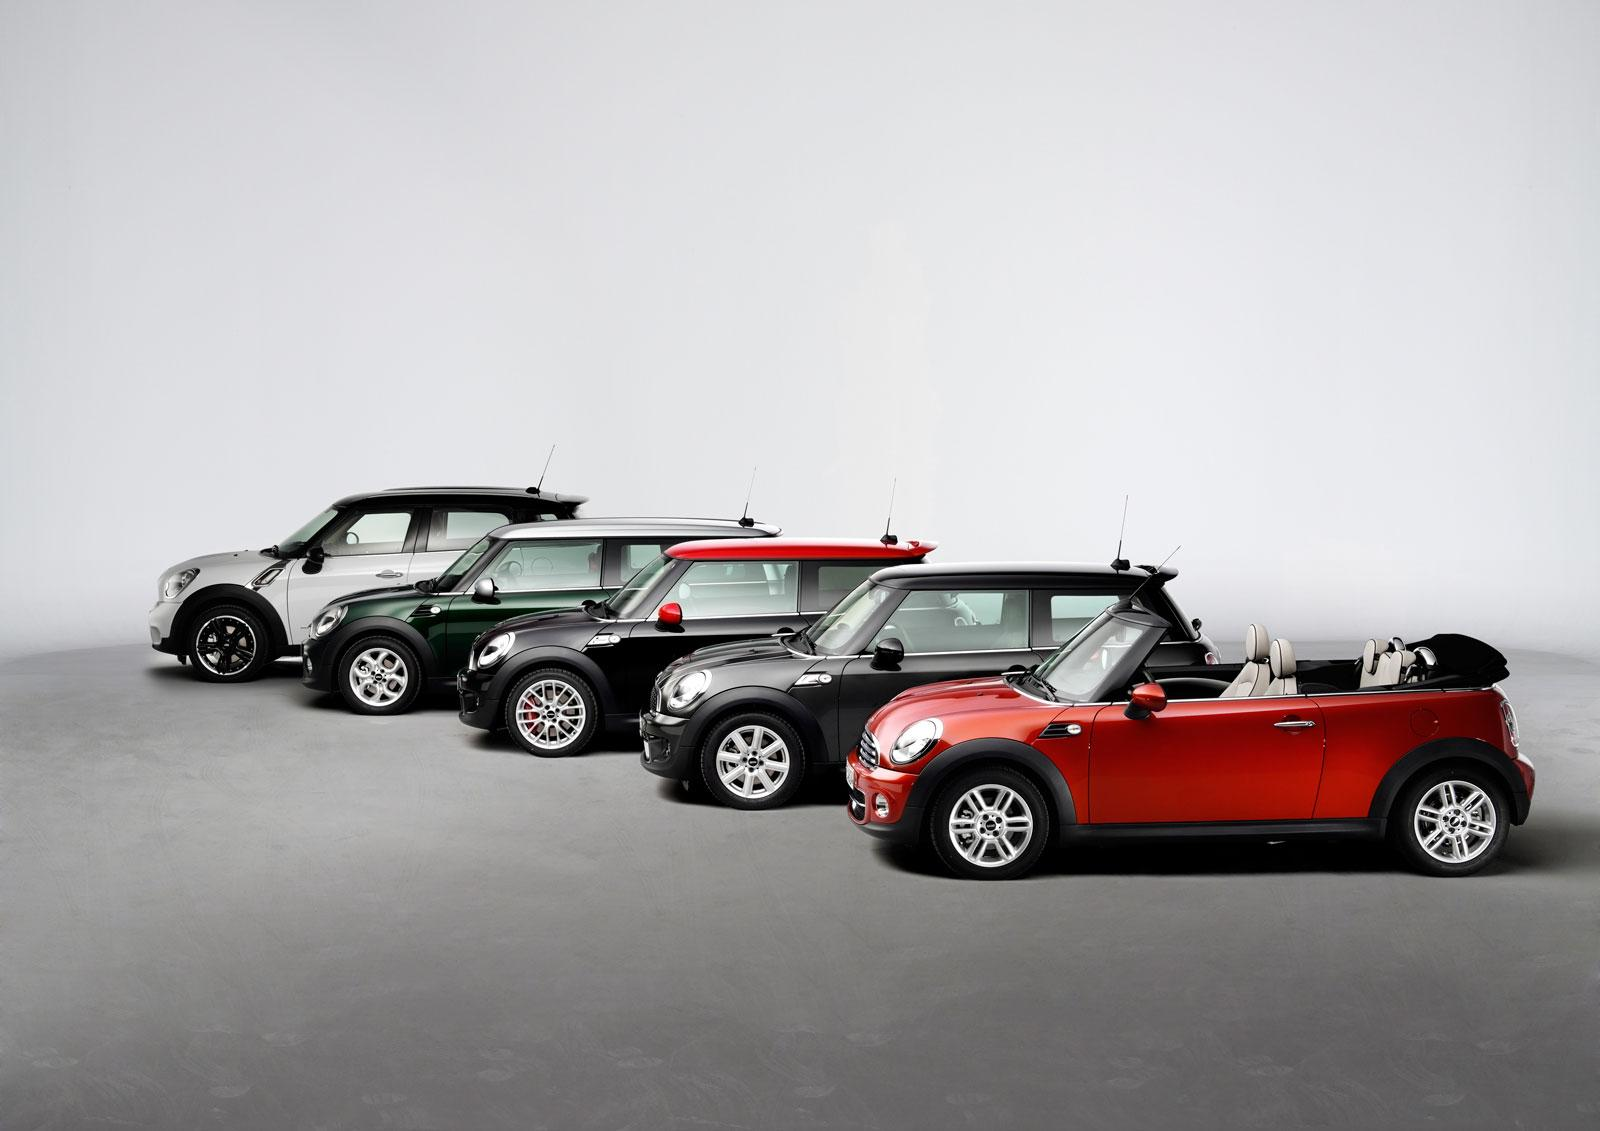 MINI model line-up - Car Body Design